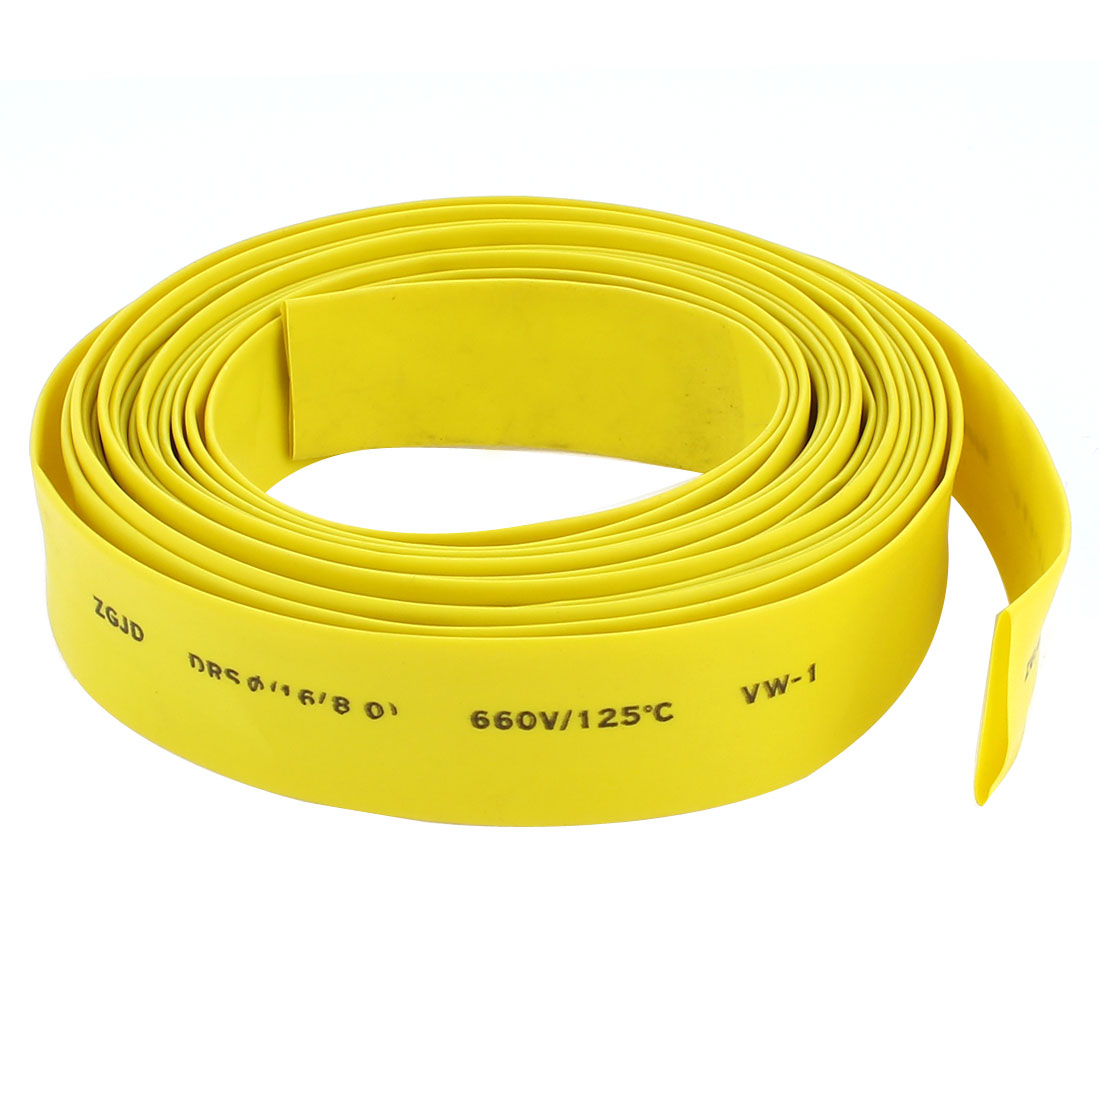 16mm Diameter Heat Shrinkable Tube Shrink Tubing Wire Wrap 5M 16Ft Yellow